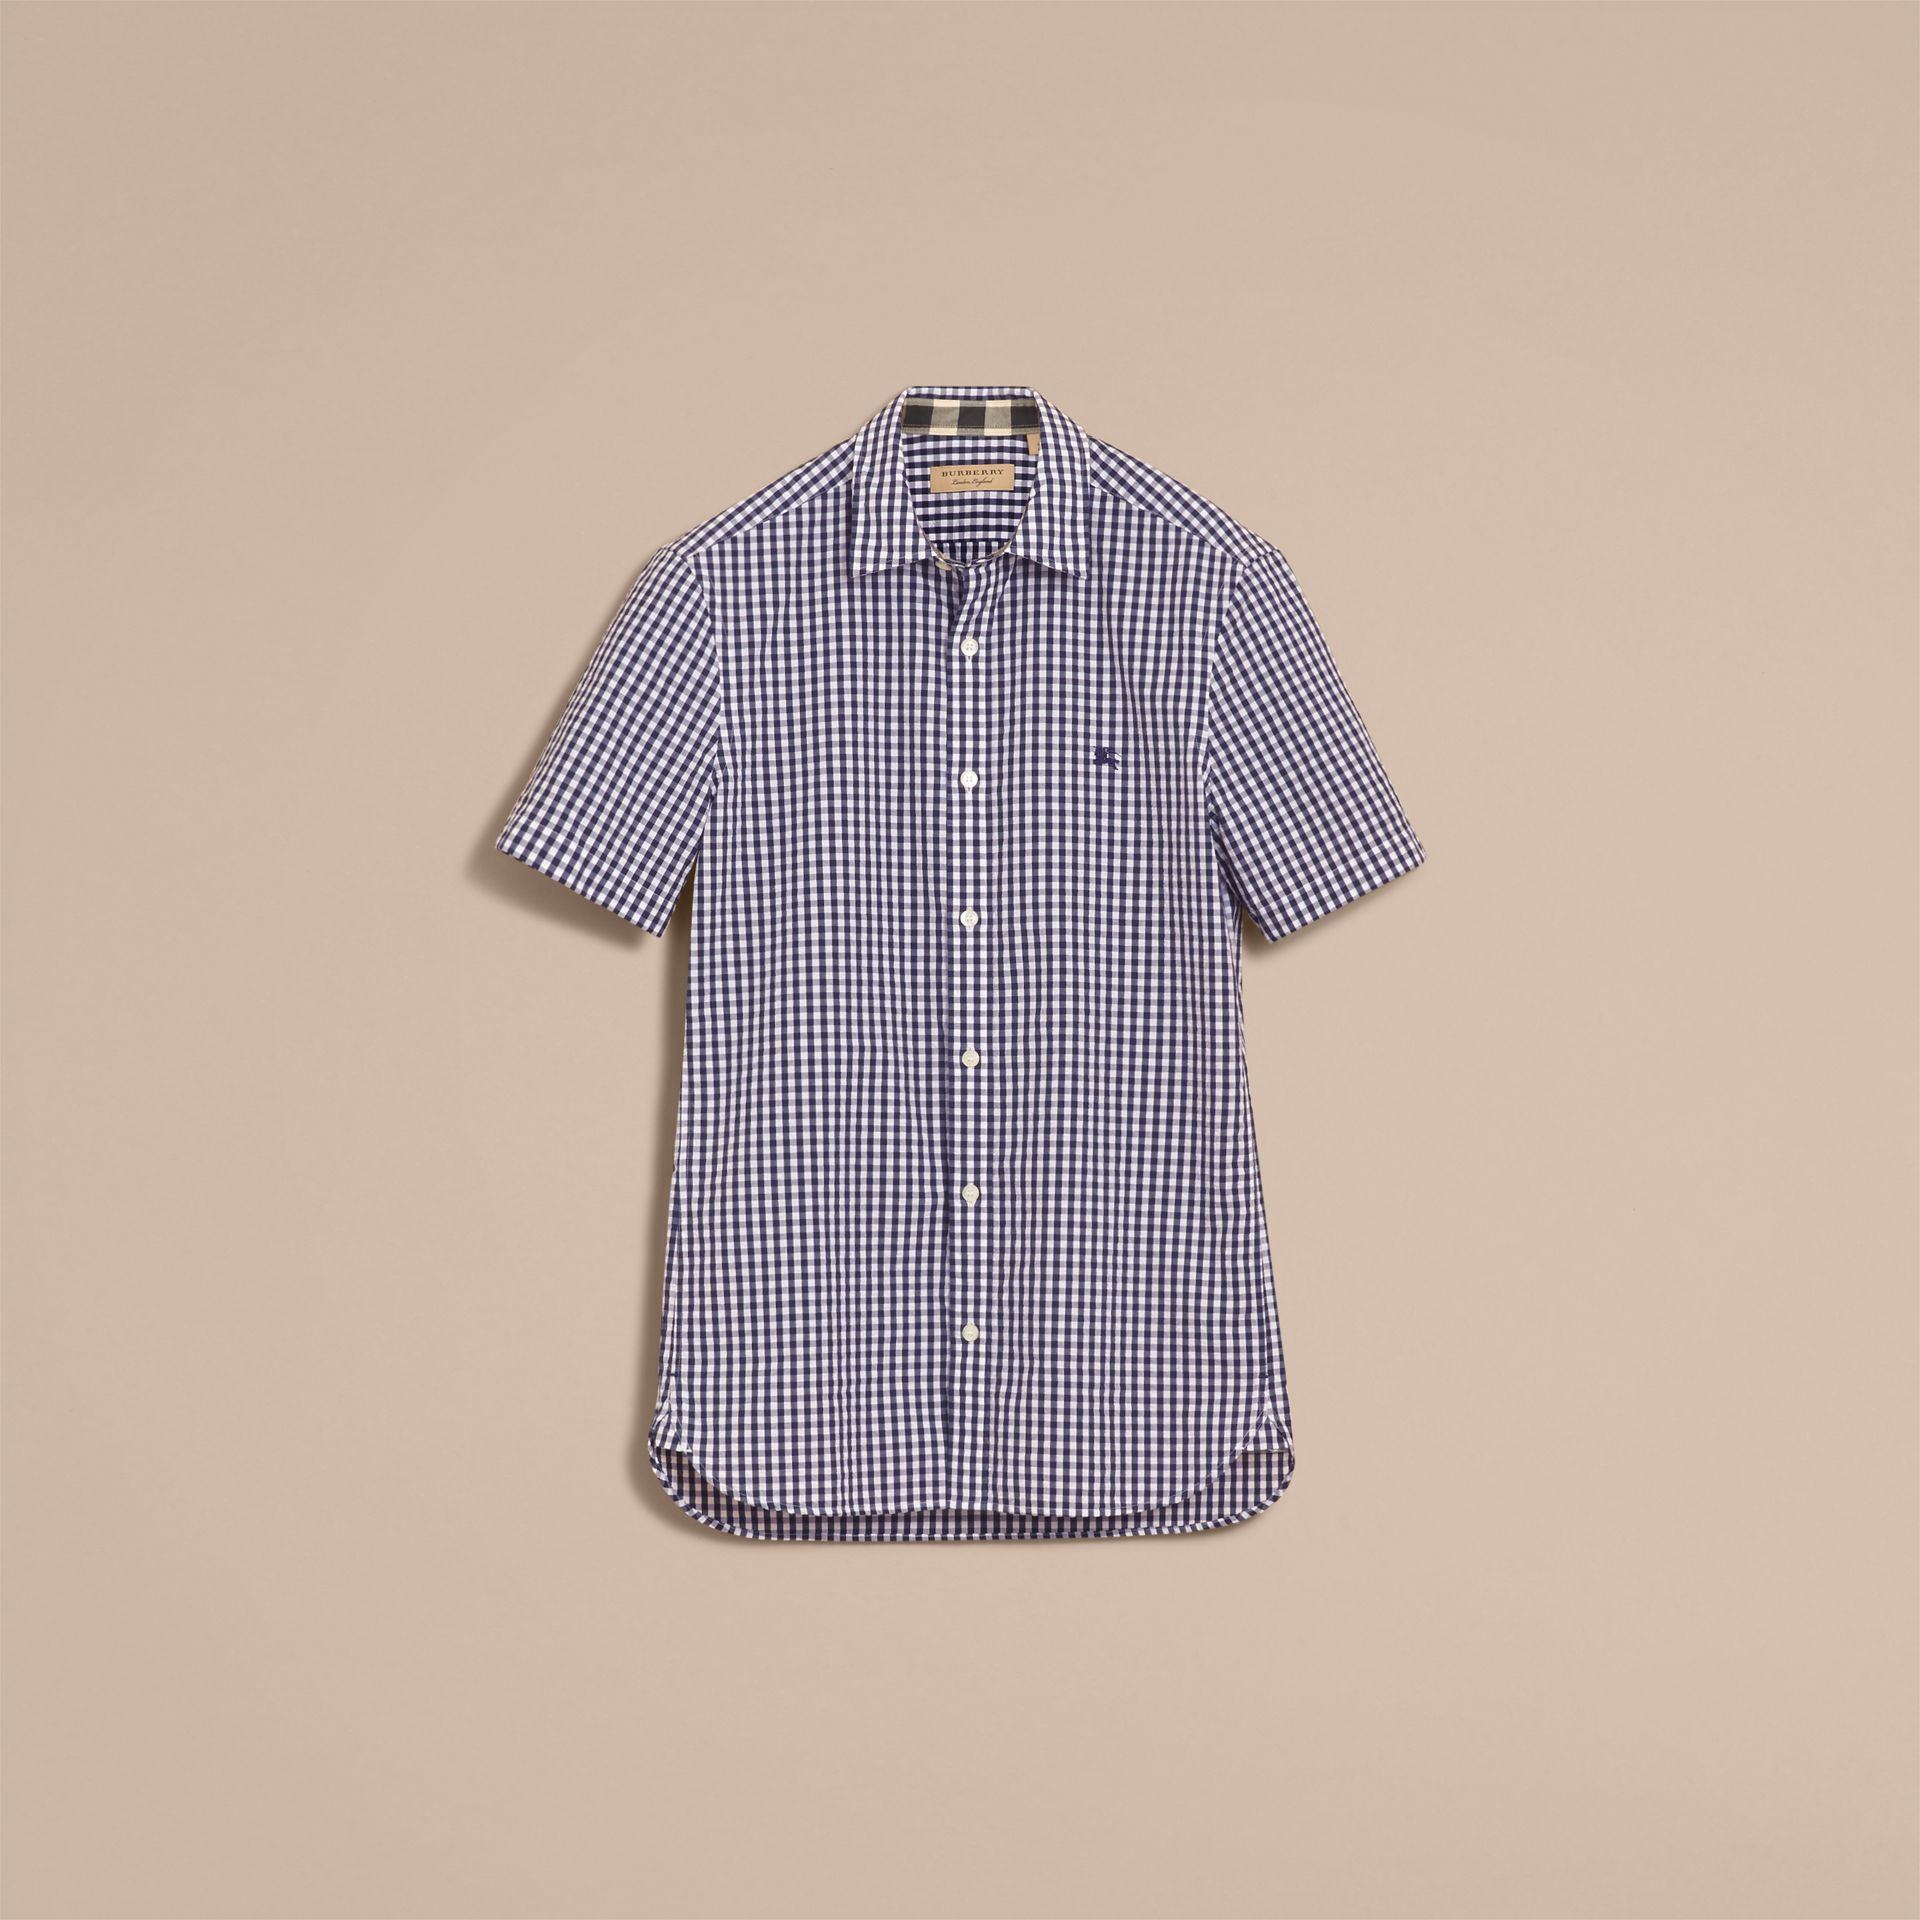 Short-sleeved Gingham Cotton Poplin Shirt in Ink Blue - Men | Burberry - gallery image 4